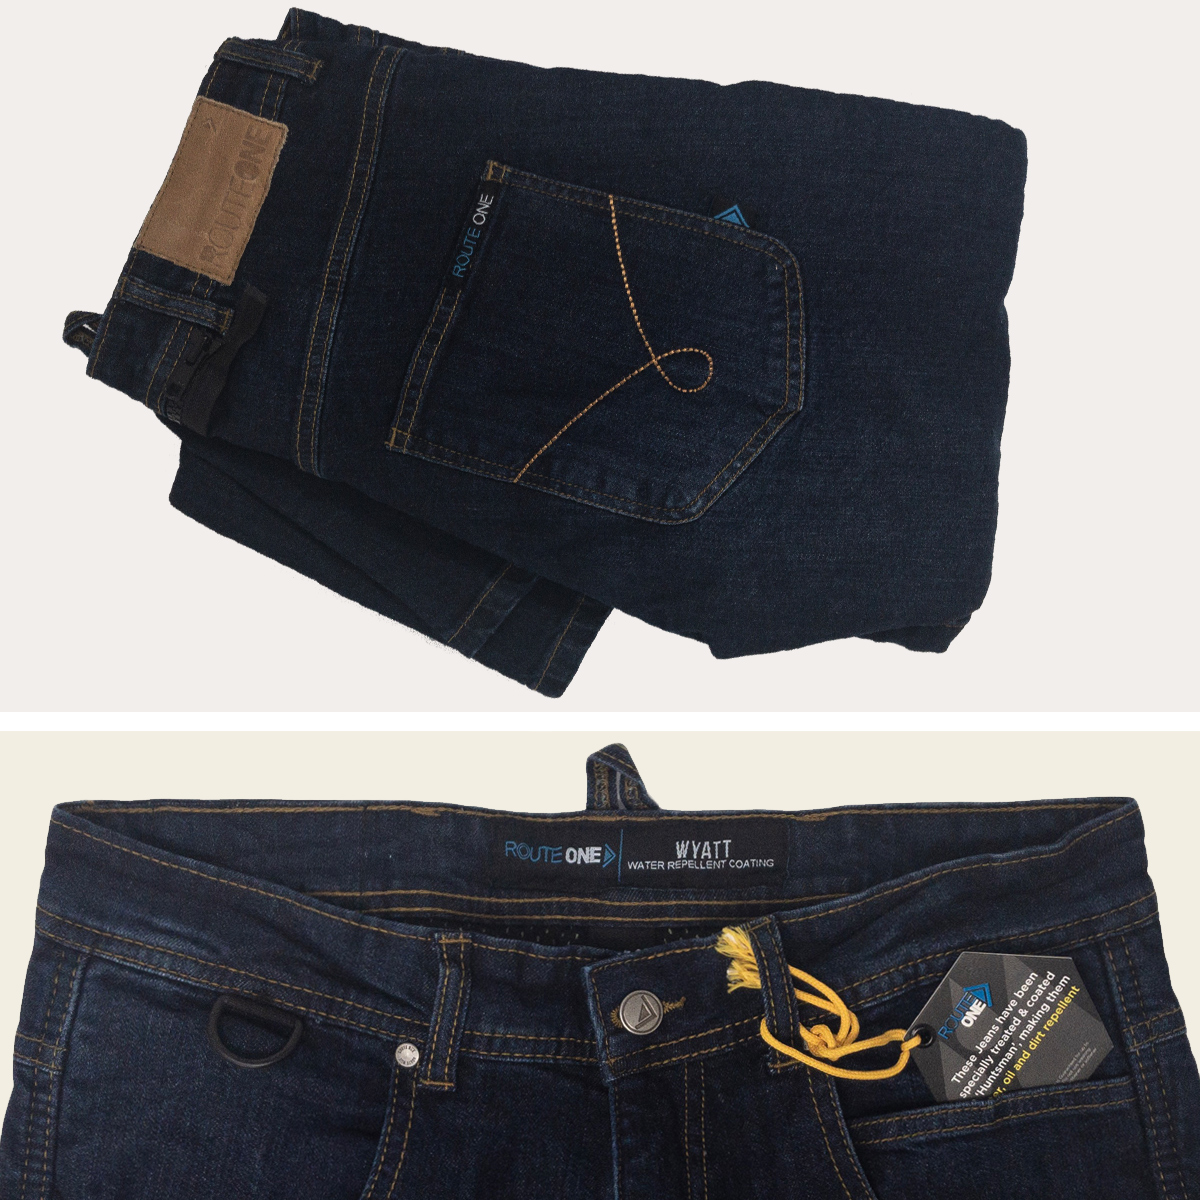 Route One Wyatt Jeans